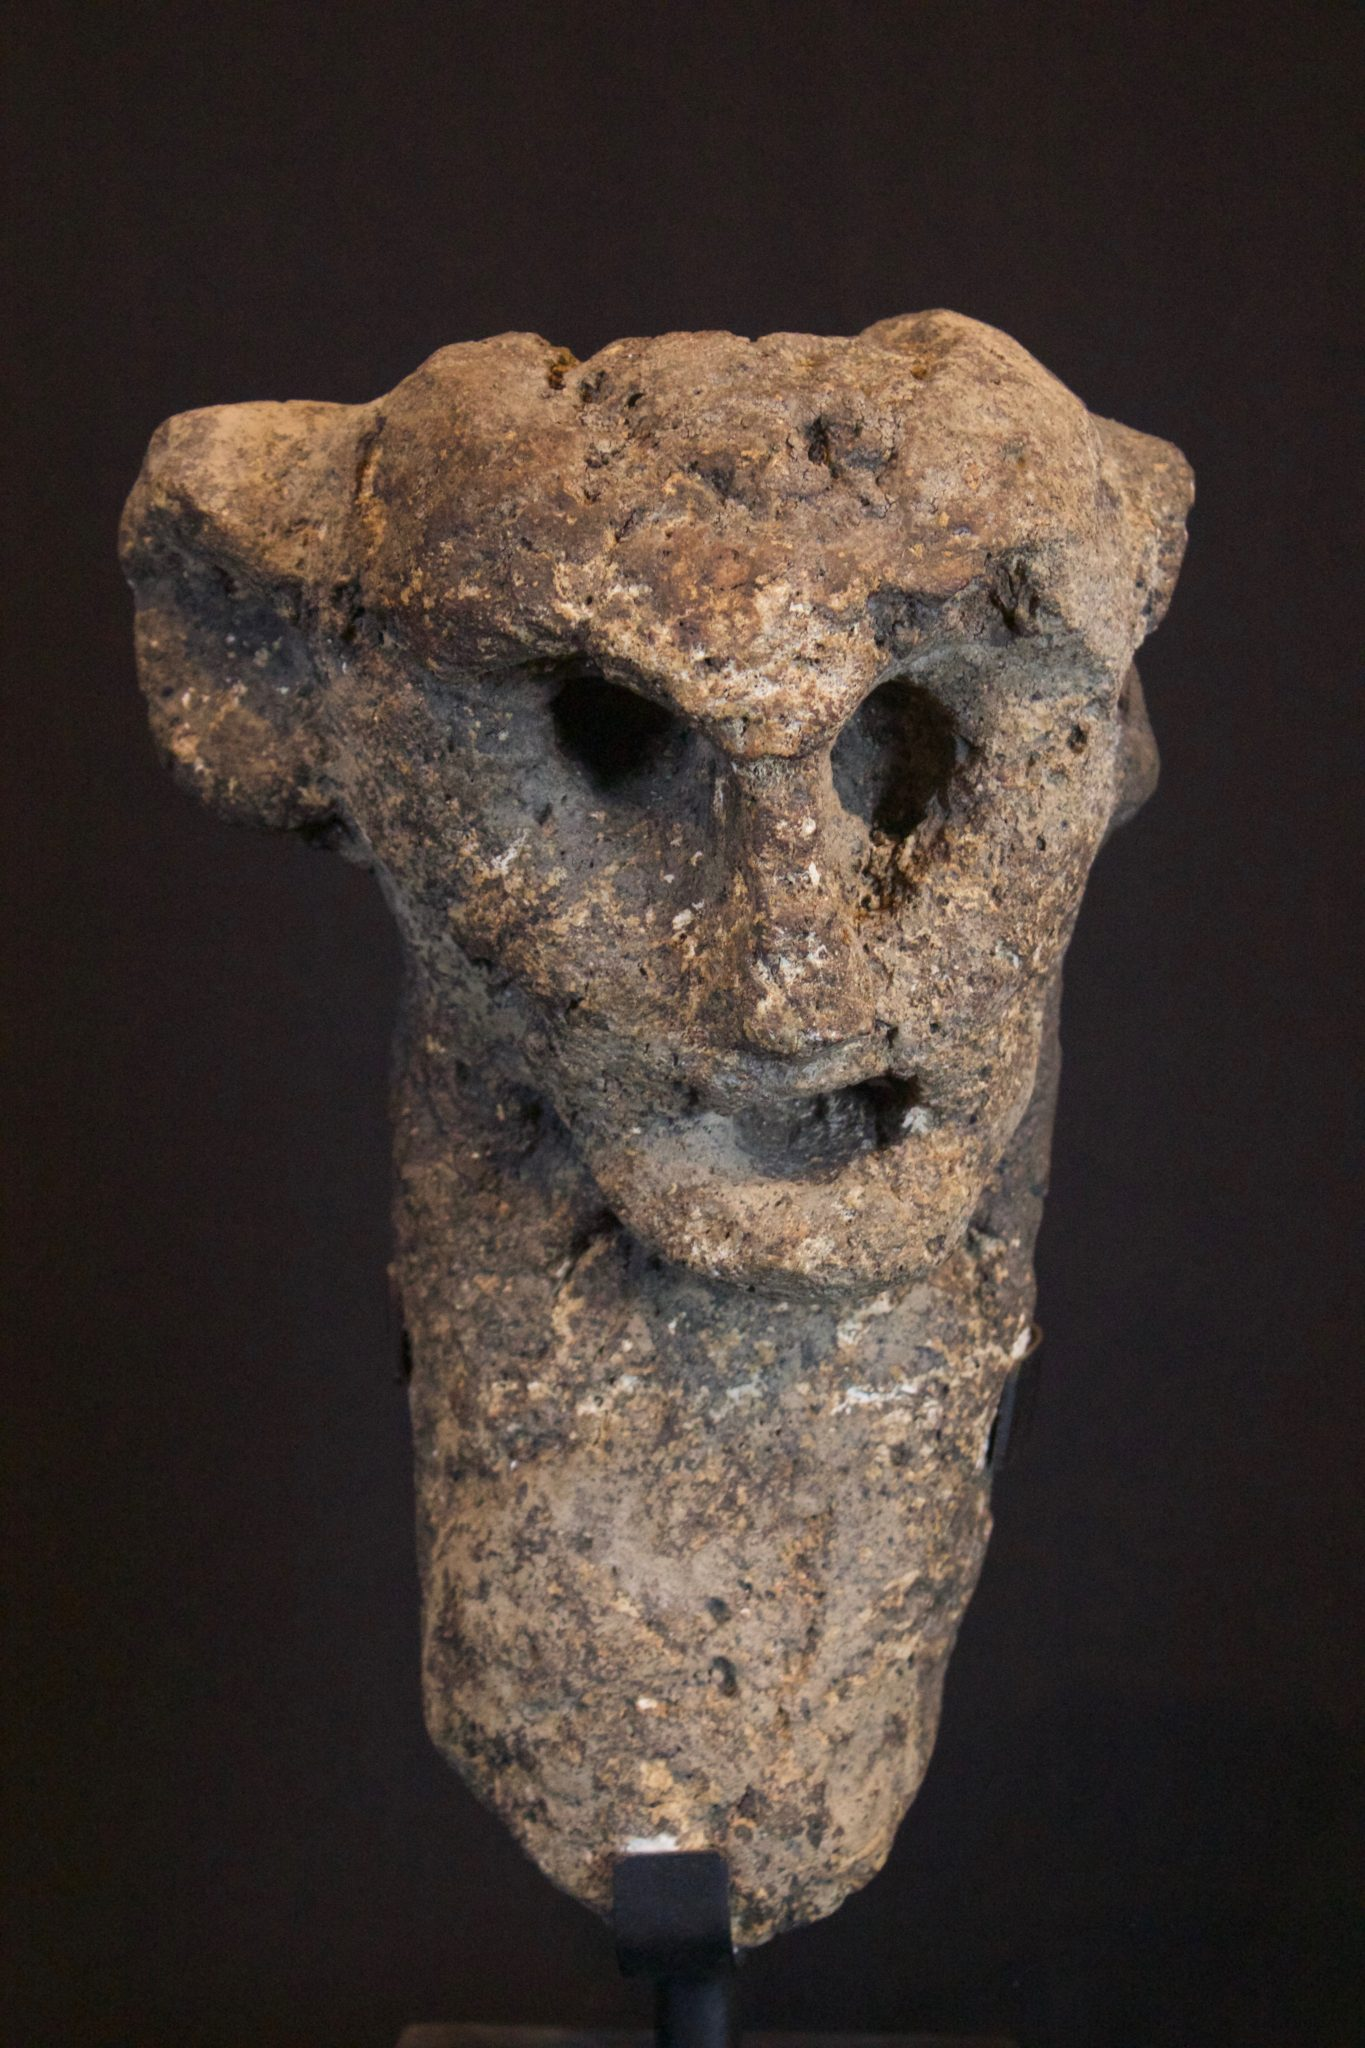 """Shaman's Effigy Figure, West Flores Island, Lesser Sunda Islands, Indonesia, Bena village, Early to mid 10th c. Stone, Used by shaman for healing and divination. 11 ½"""" x 7 ½"""" x 5 ½"""", Sold"""